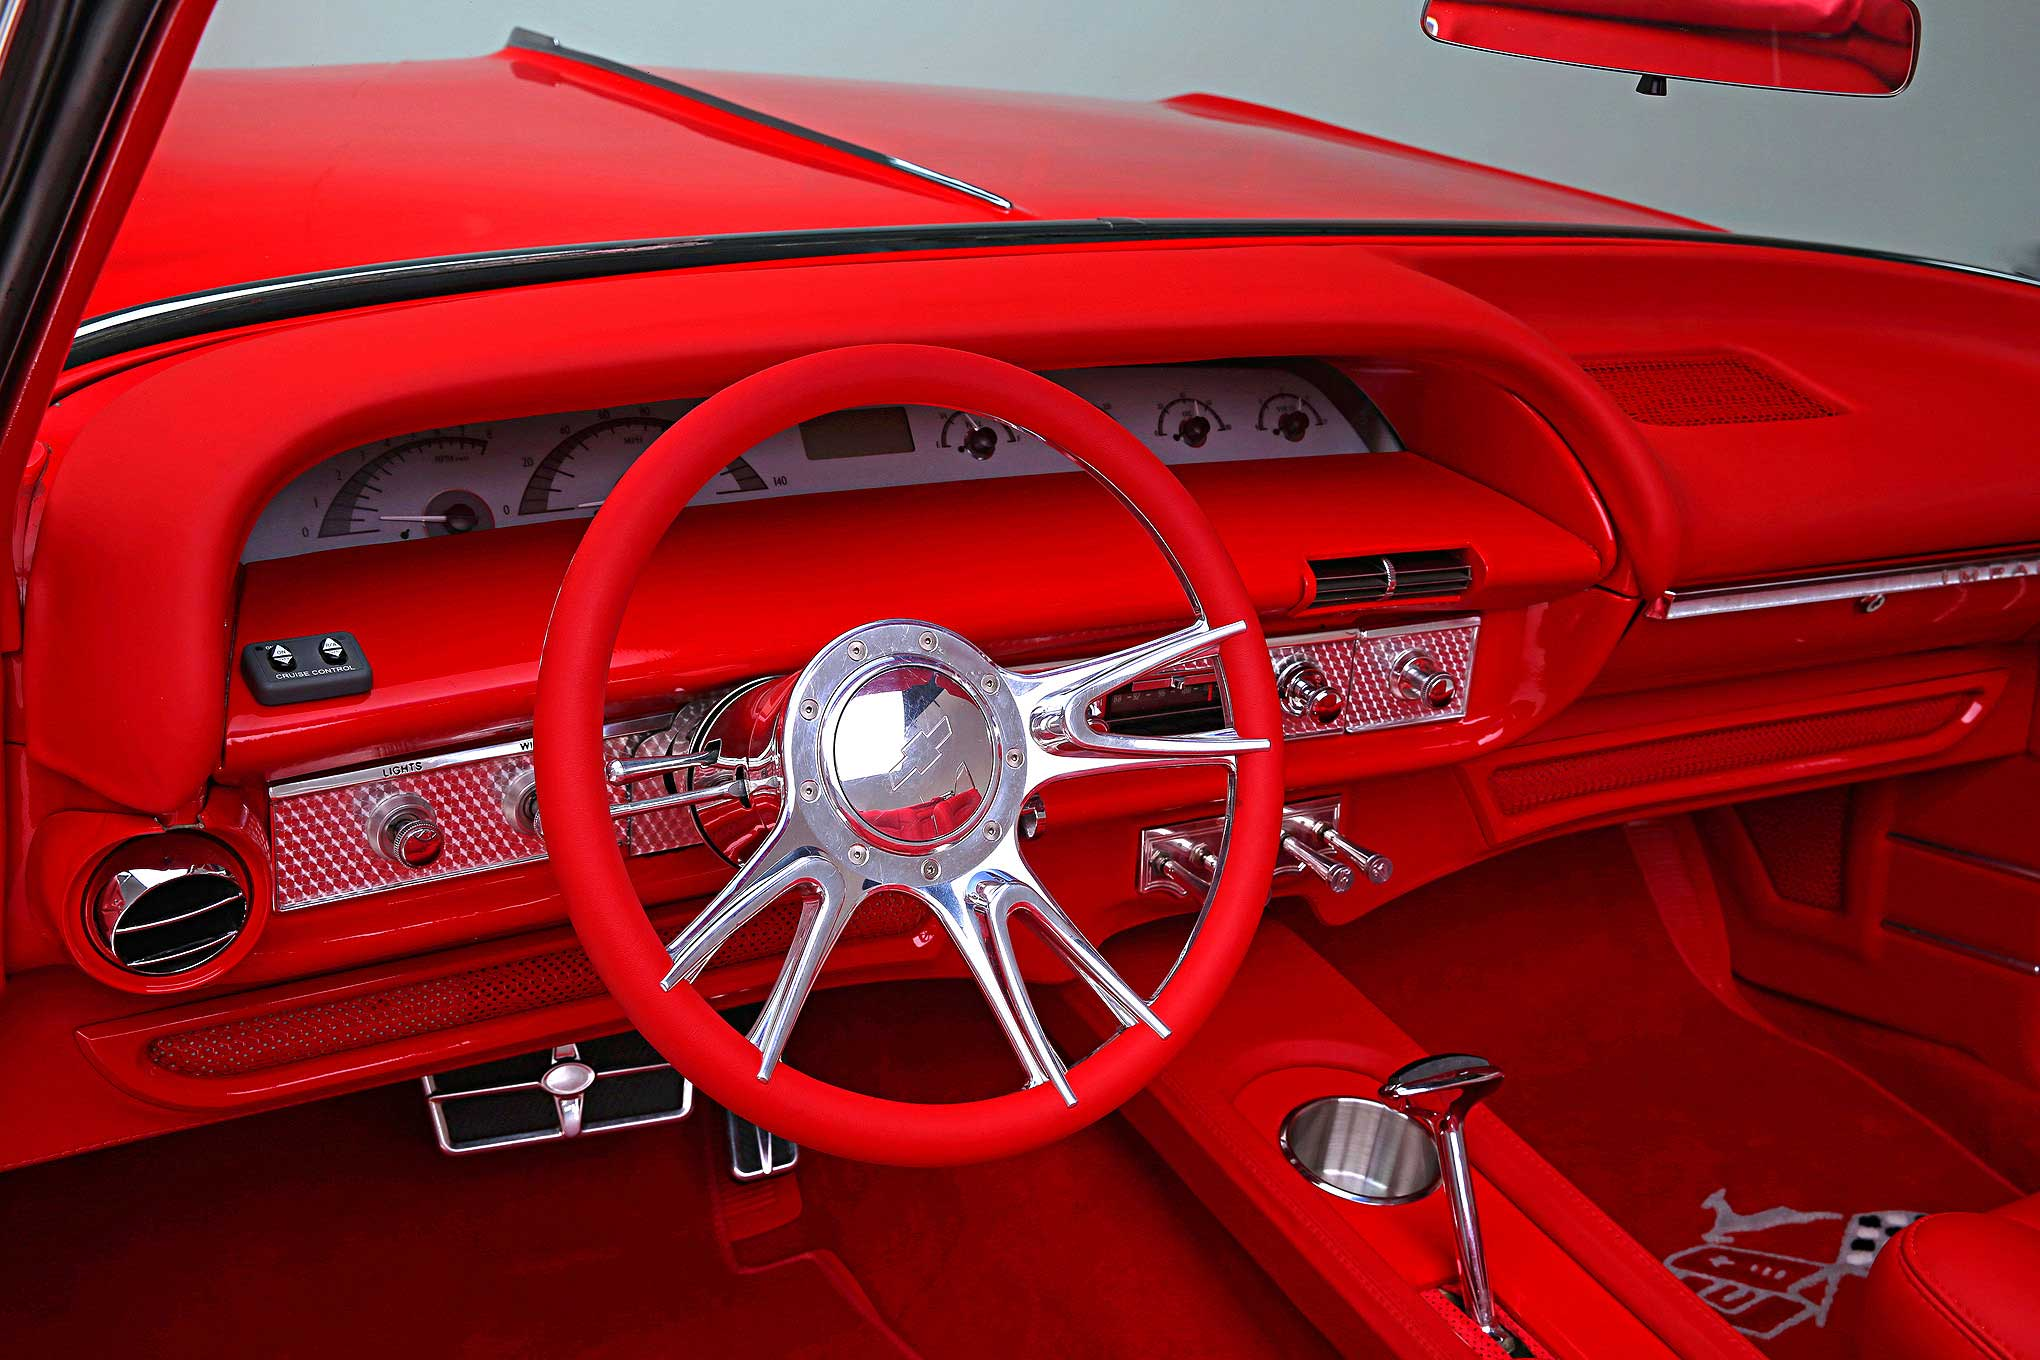 1963 impala tachometer wiring diagram electrical switch diagrams uk 3964 chevy ss convertible standing the test of time